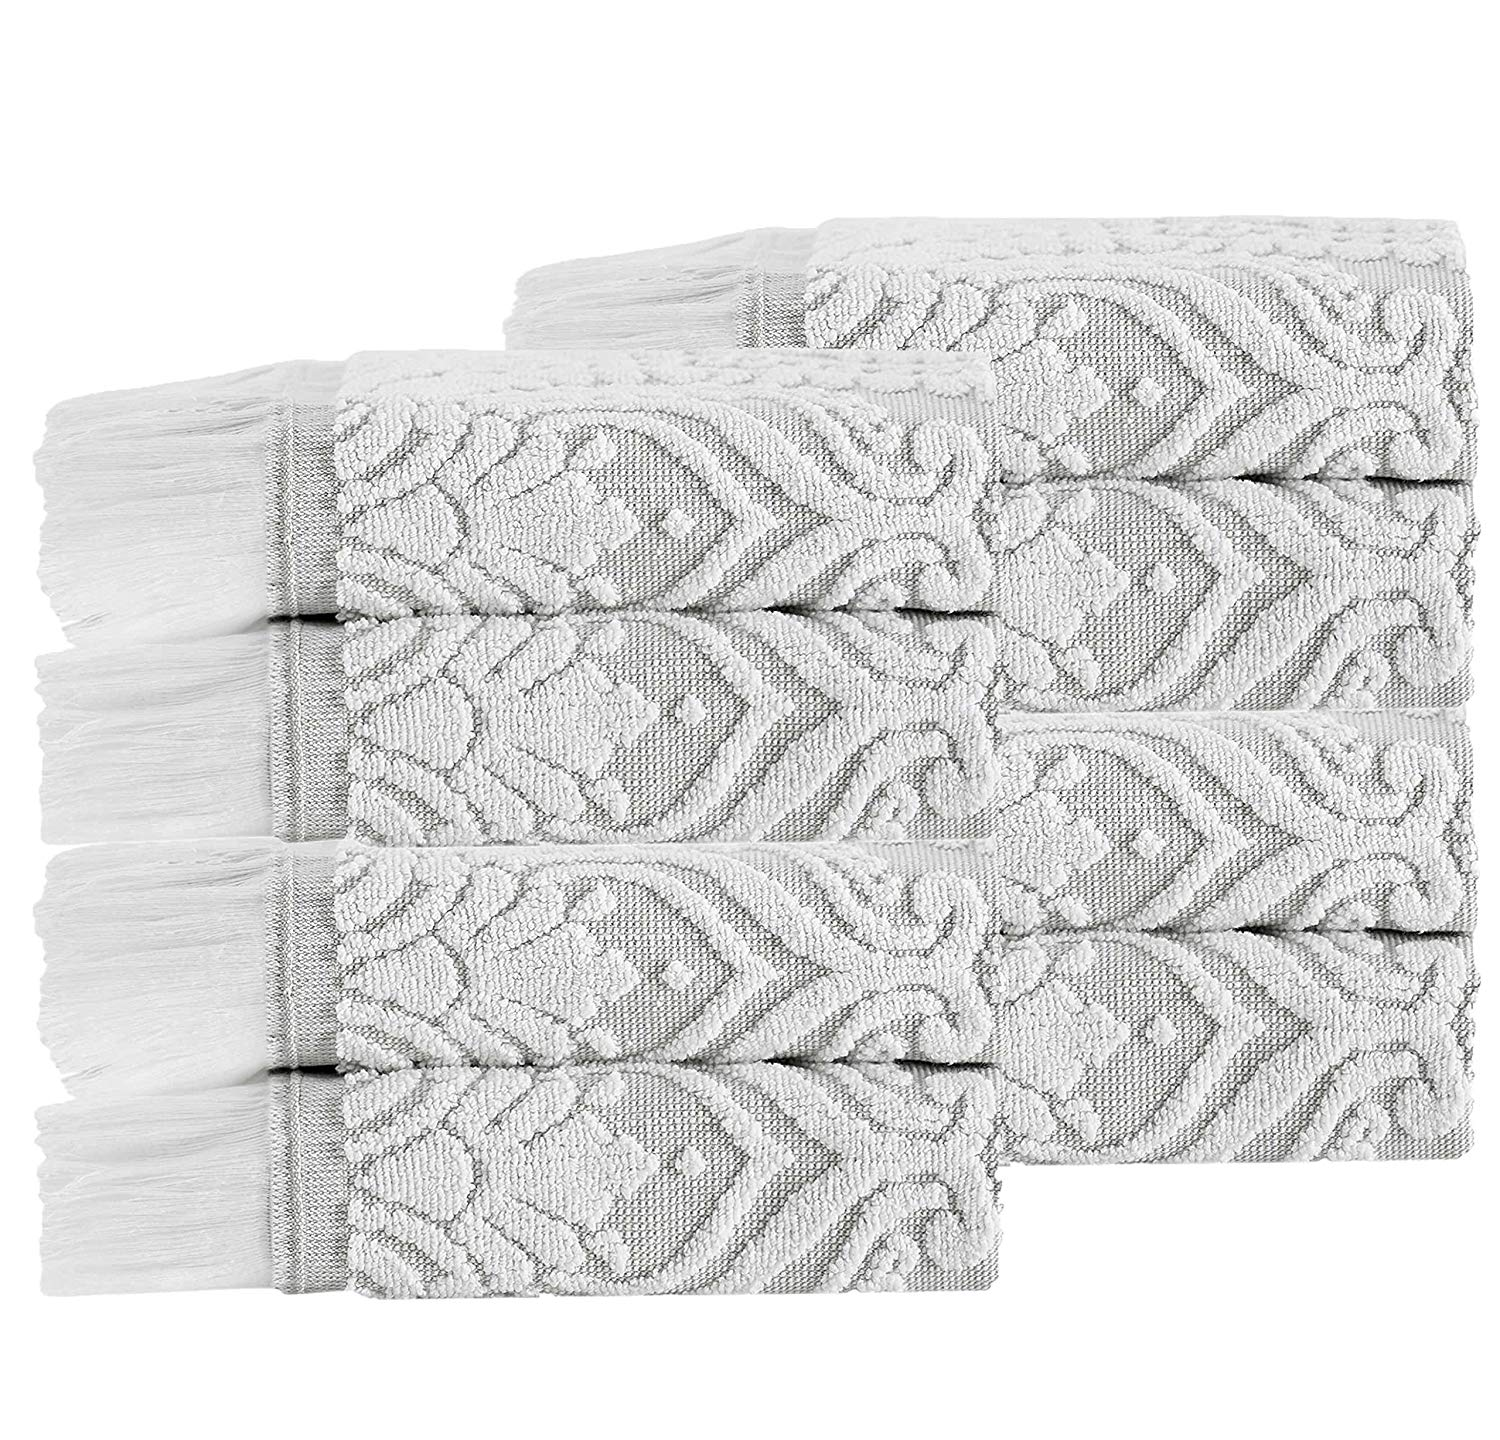 8 Piece Beige Jacquard Towel Set With 12 X 12 Inches Wash Cloths, Ivory Damask Textured Plush Long Staple Quick-drying Luxurious Elegant Eye-catching Fingertip Towels Guest Towels, Turkish Cotton